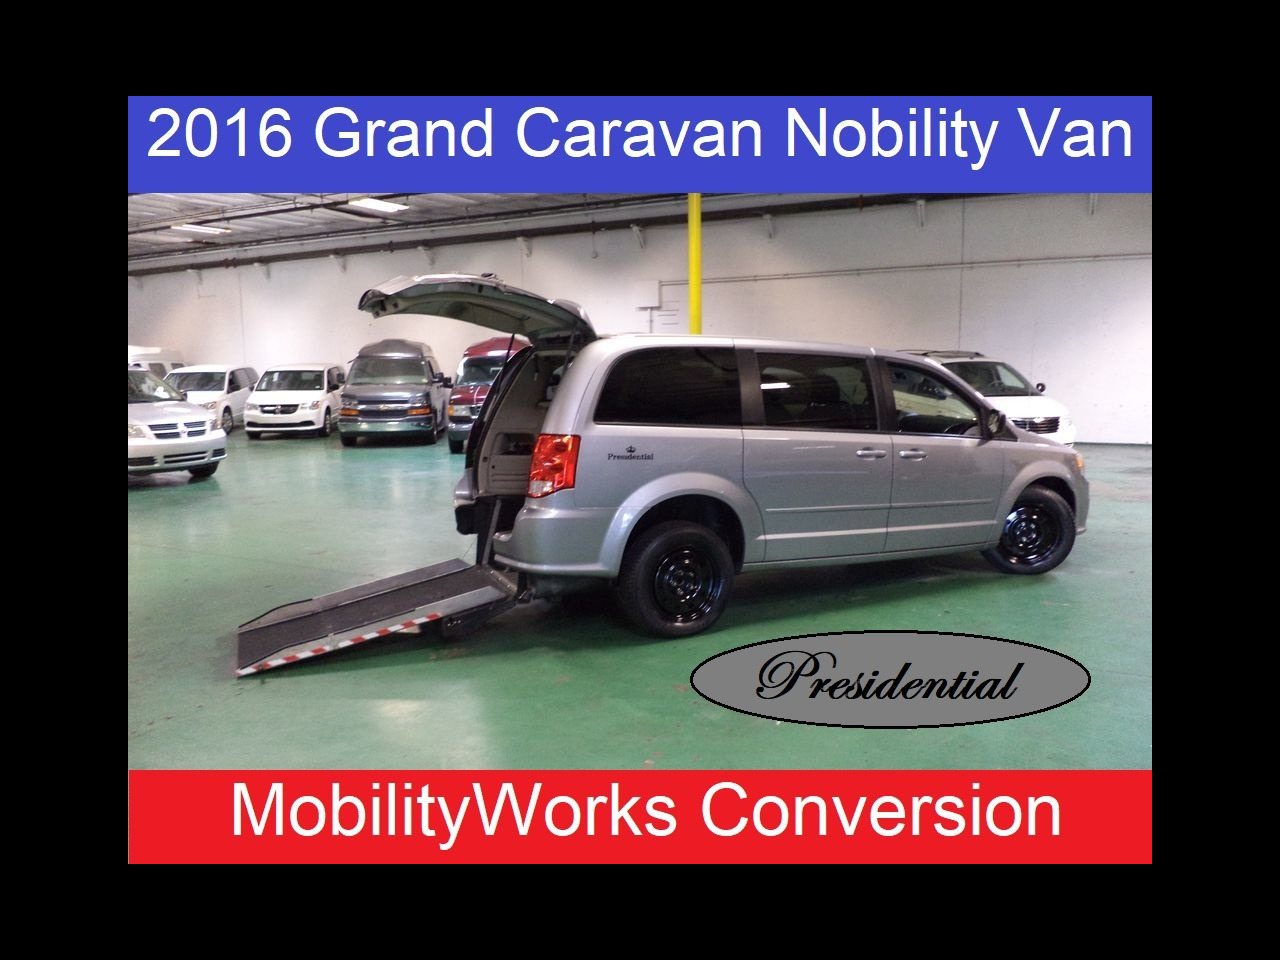 2016 Dodge Grand Caravan Presidential Mobility Wheelchair Conversin Van